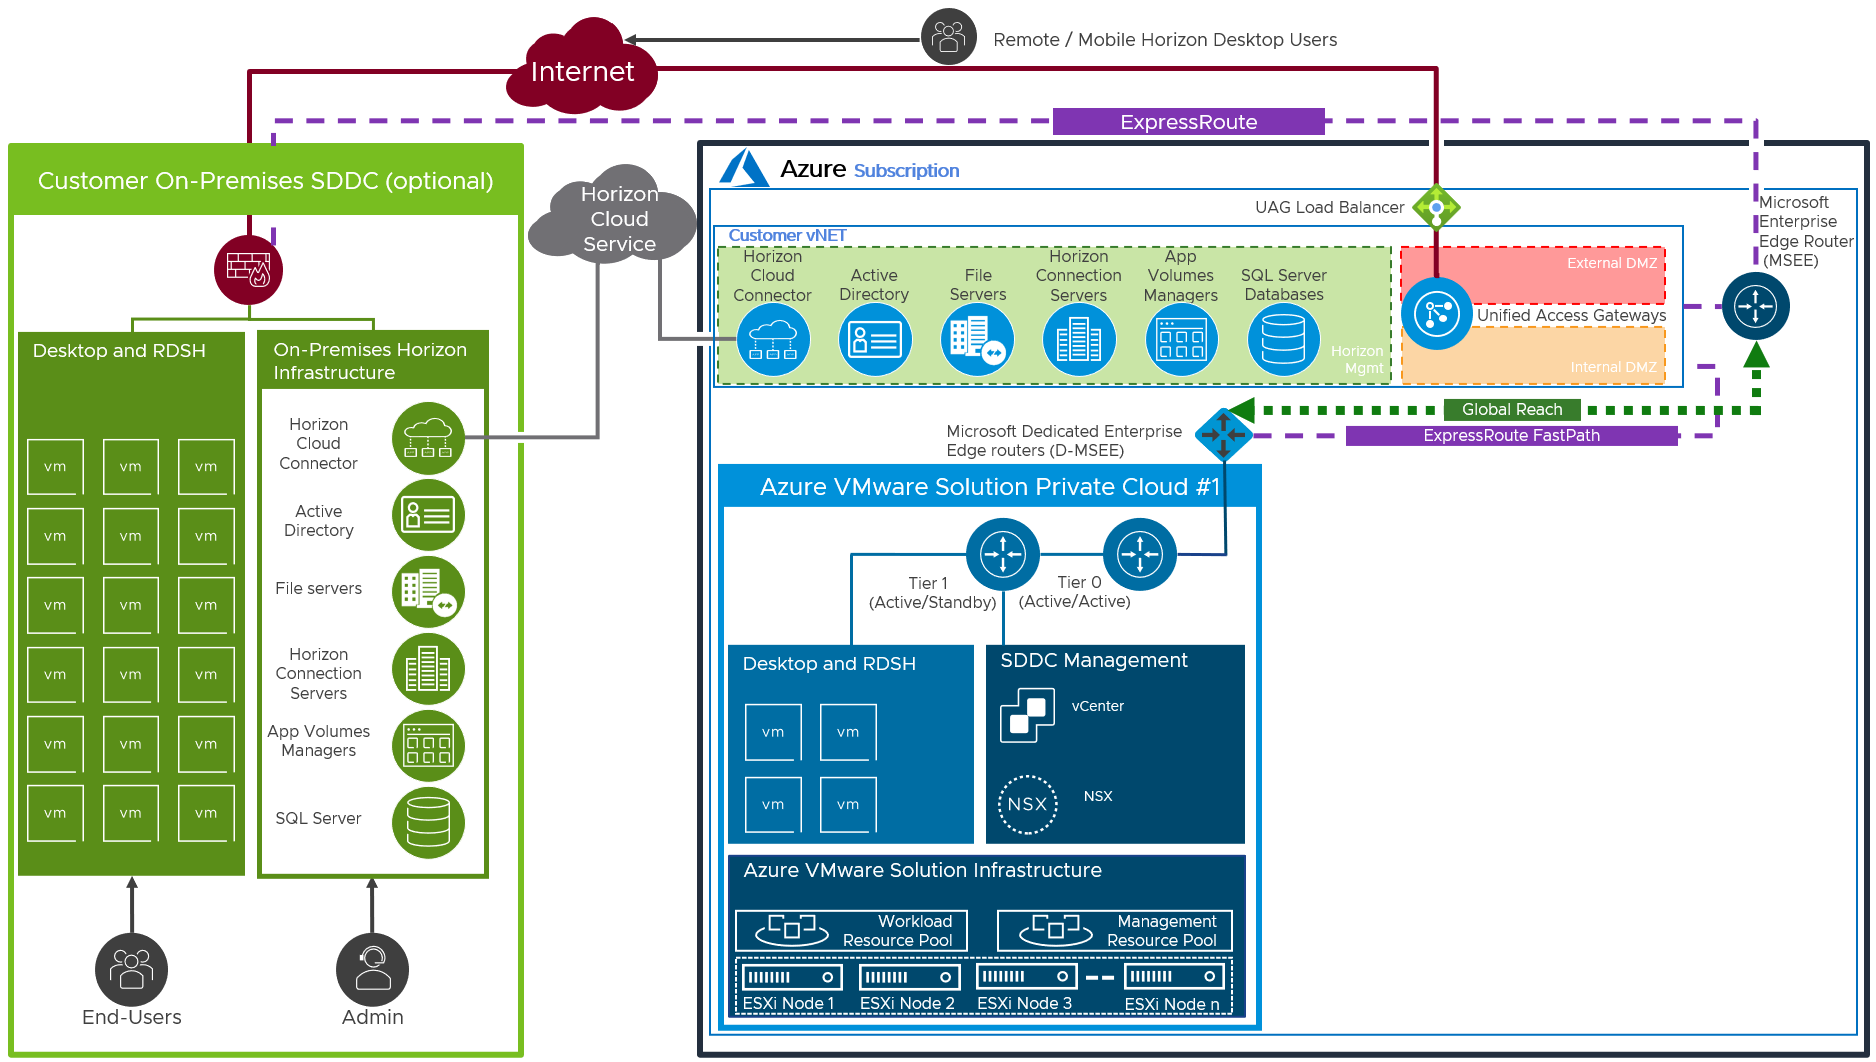 AVS Deployment with Networking to On-Premises